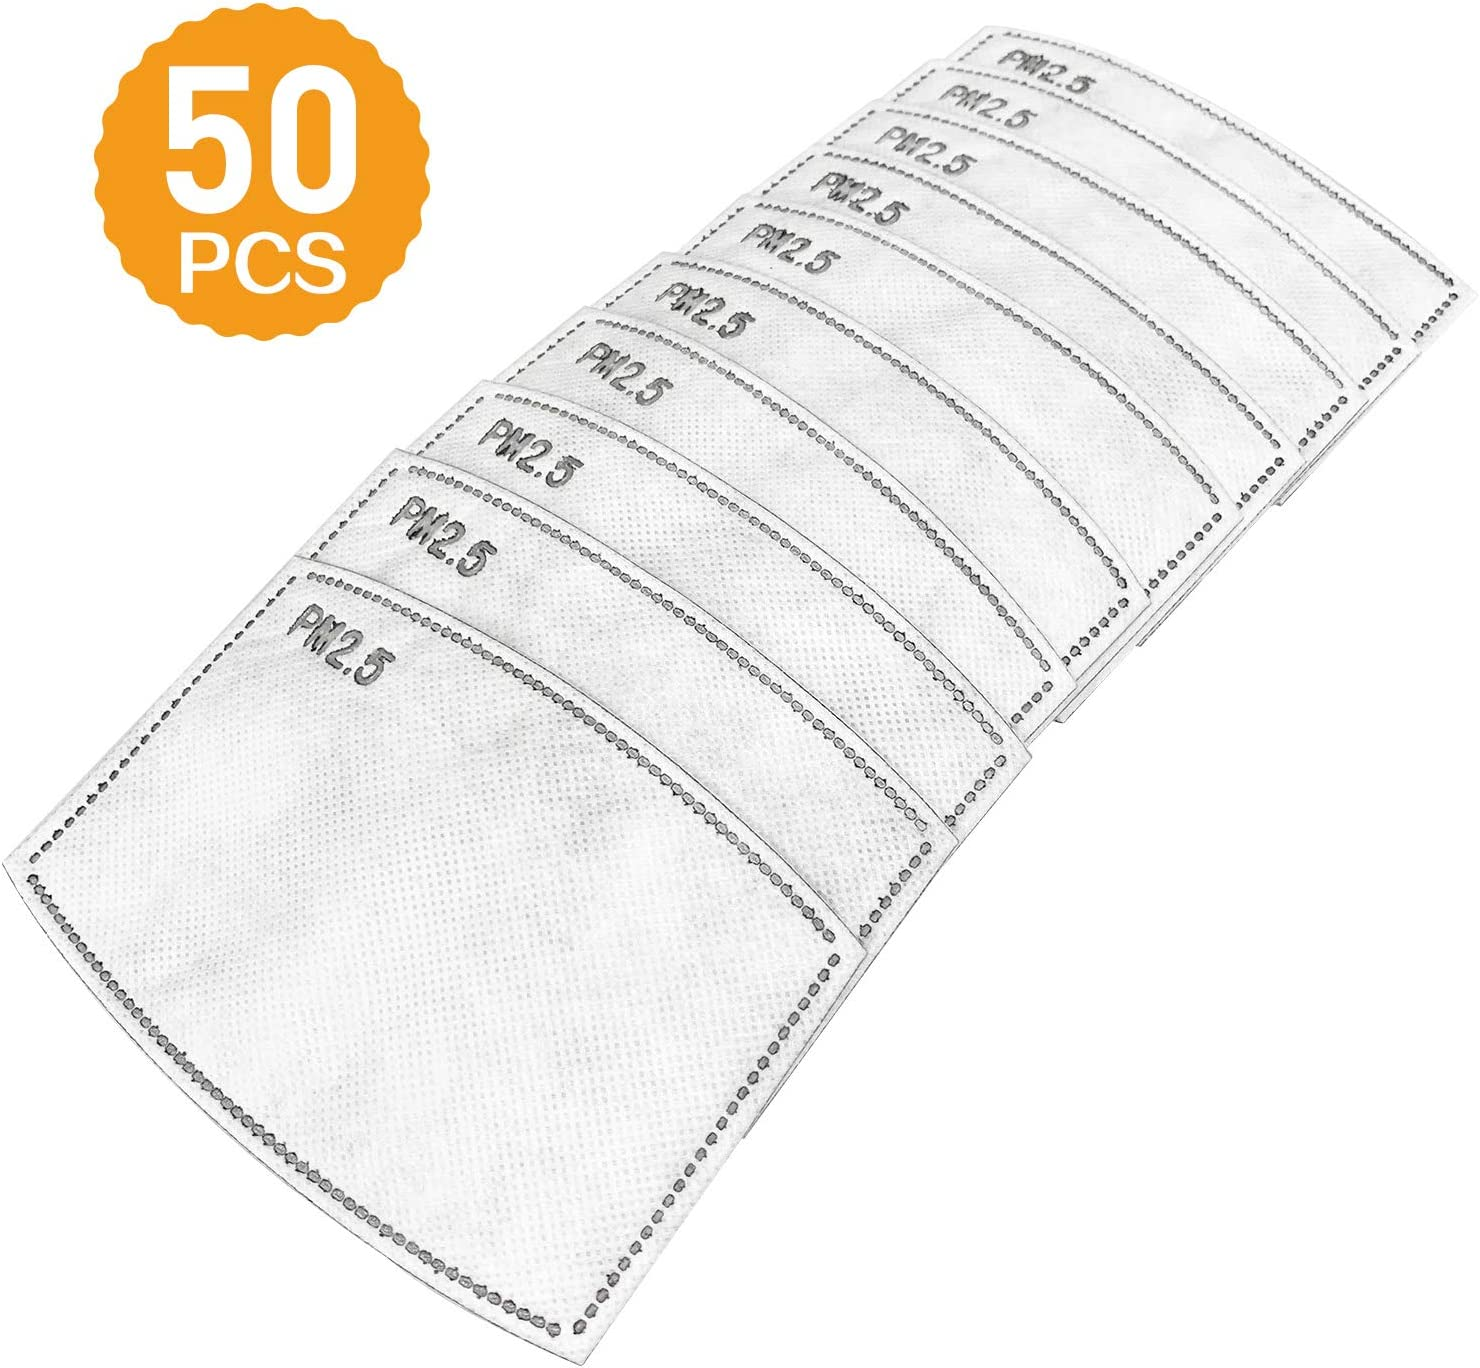 【New Arrival】50Pcs PM2.5 Activated Carbon Filter, placed in a protective cover mask (5 Layers)